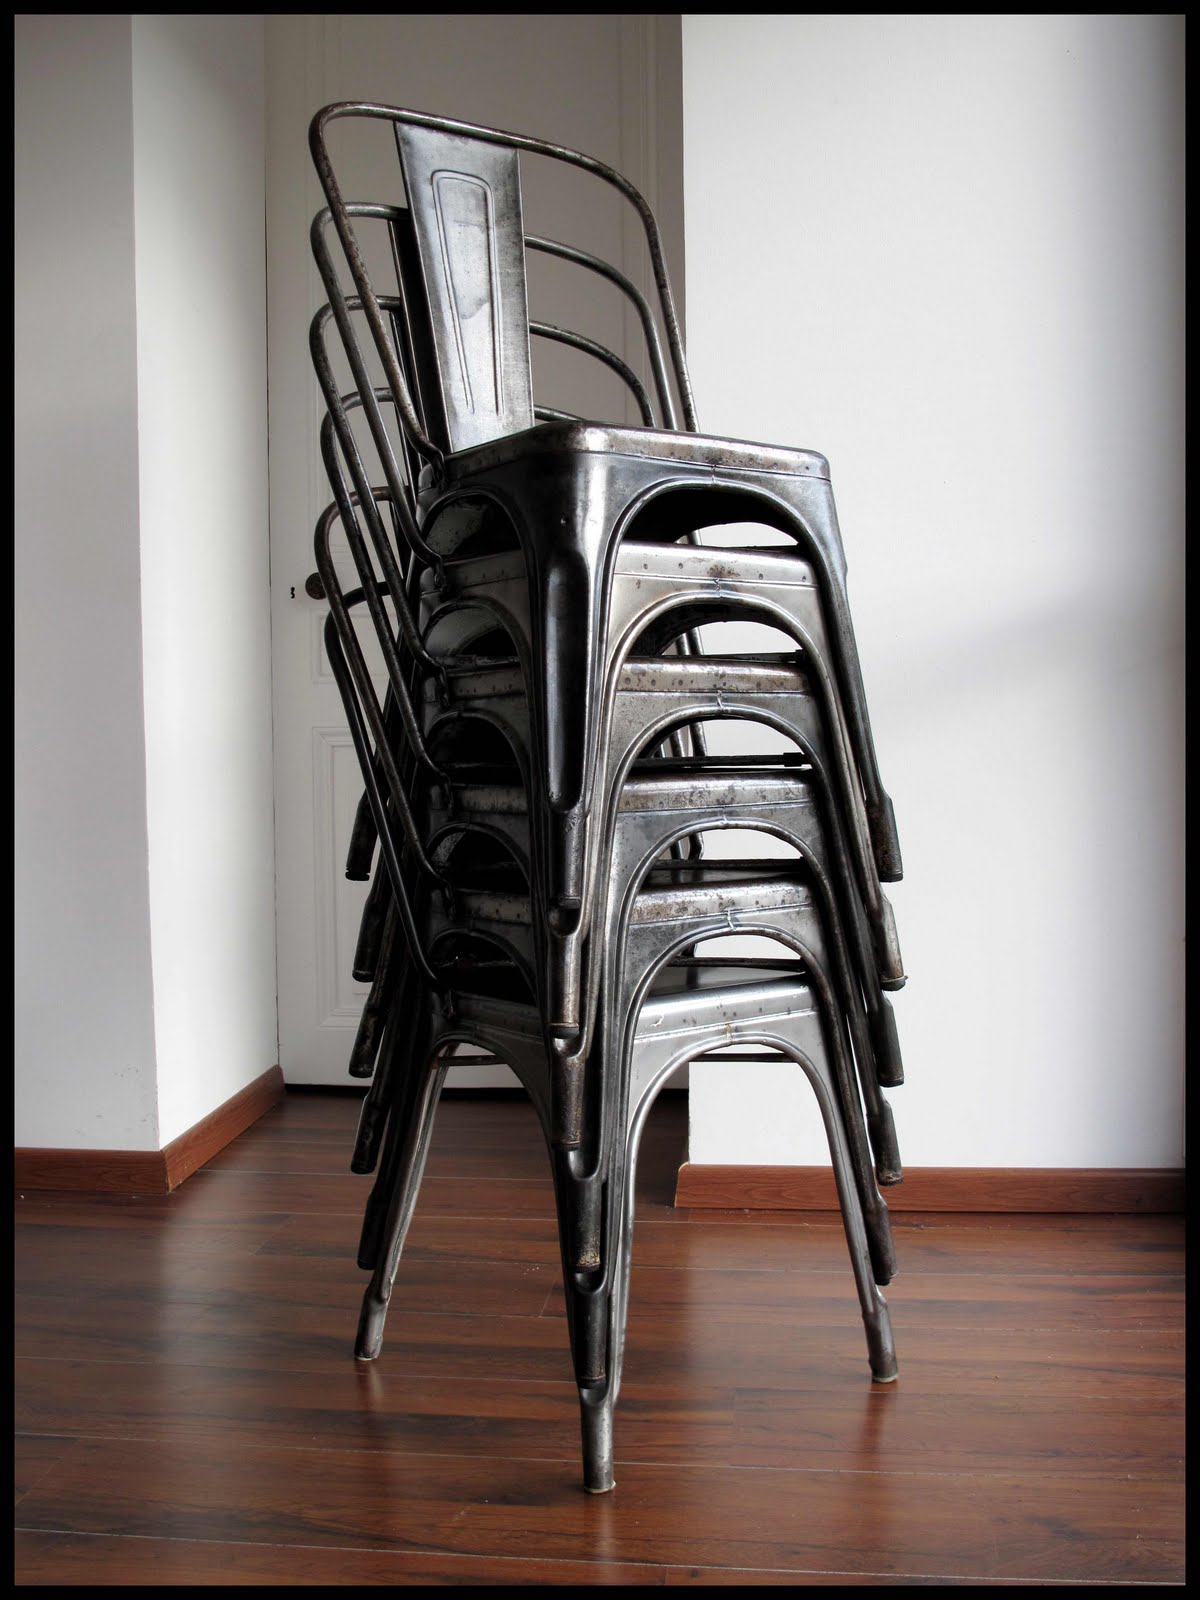 Chaises Industrielles Tolix Contact Mobilierdesign20 Gmail Deco Metal Chaises Tolix A